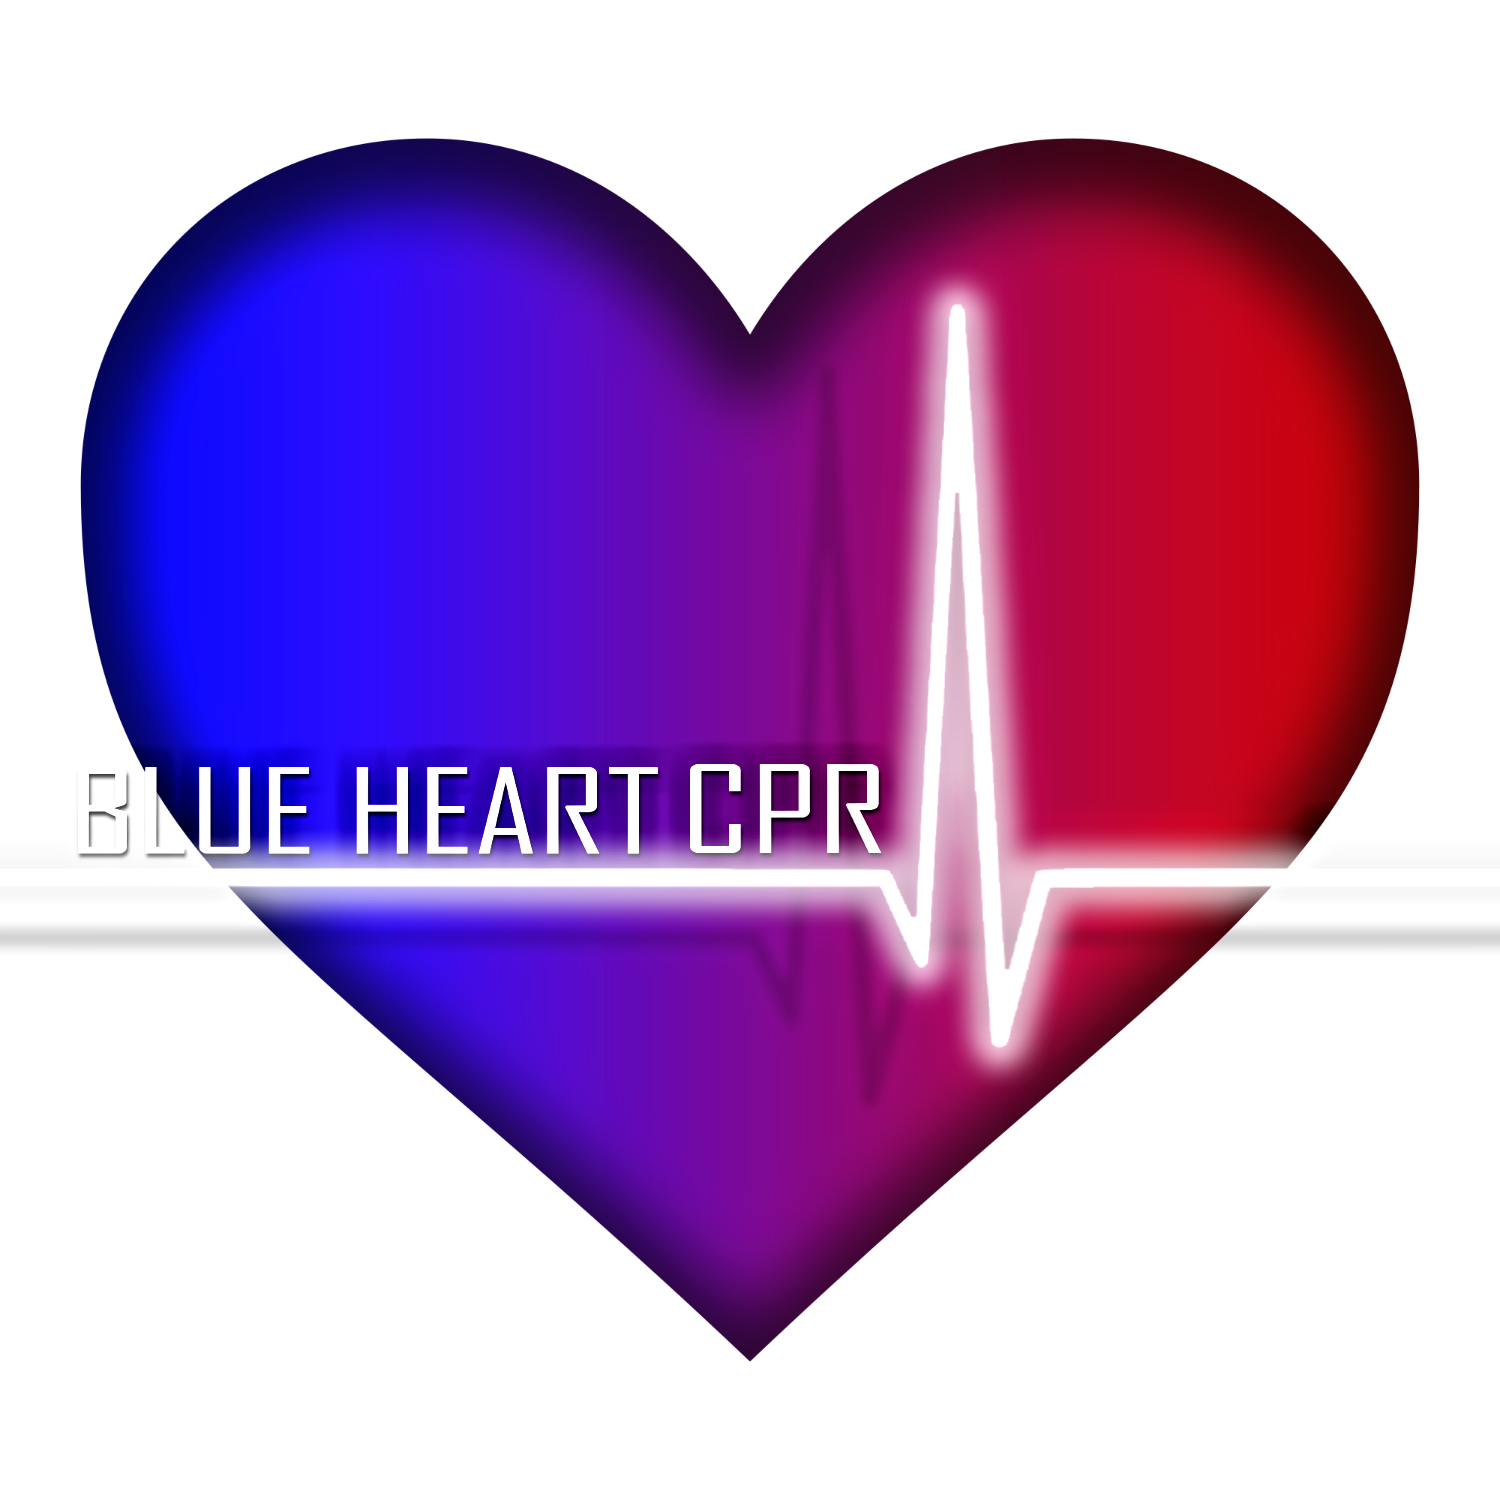 Blue Heart Cpr